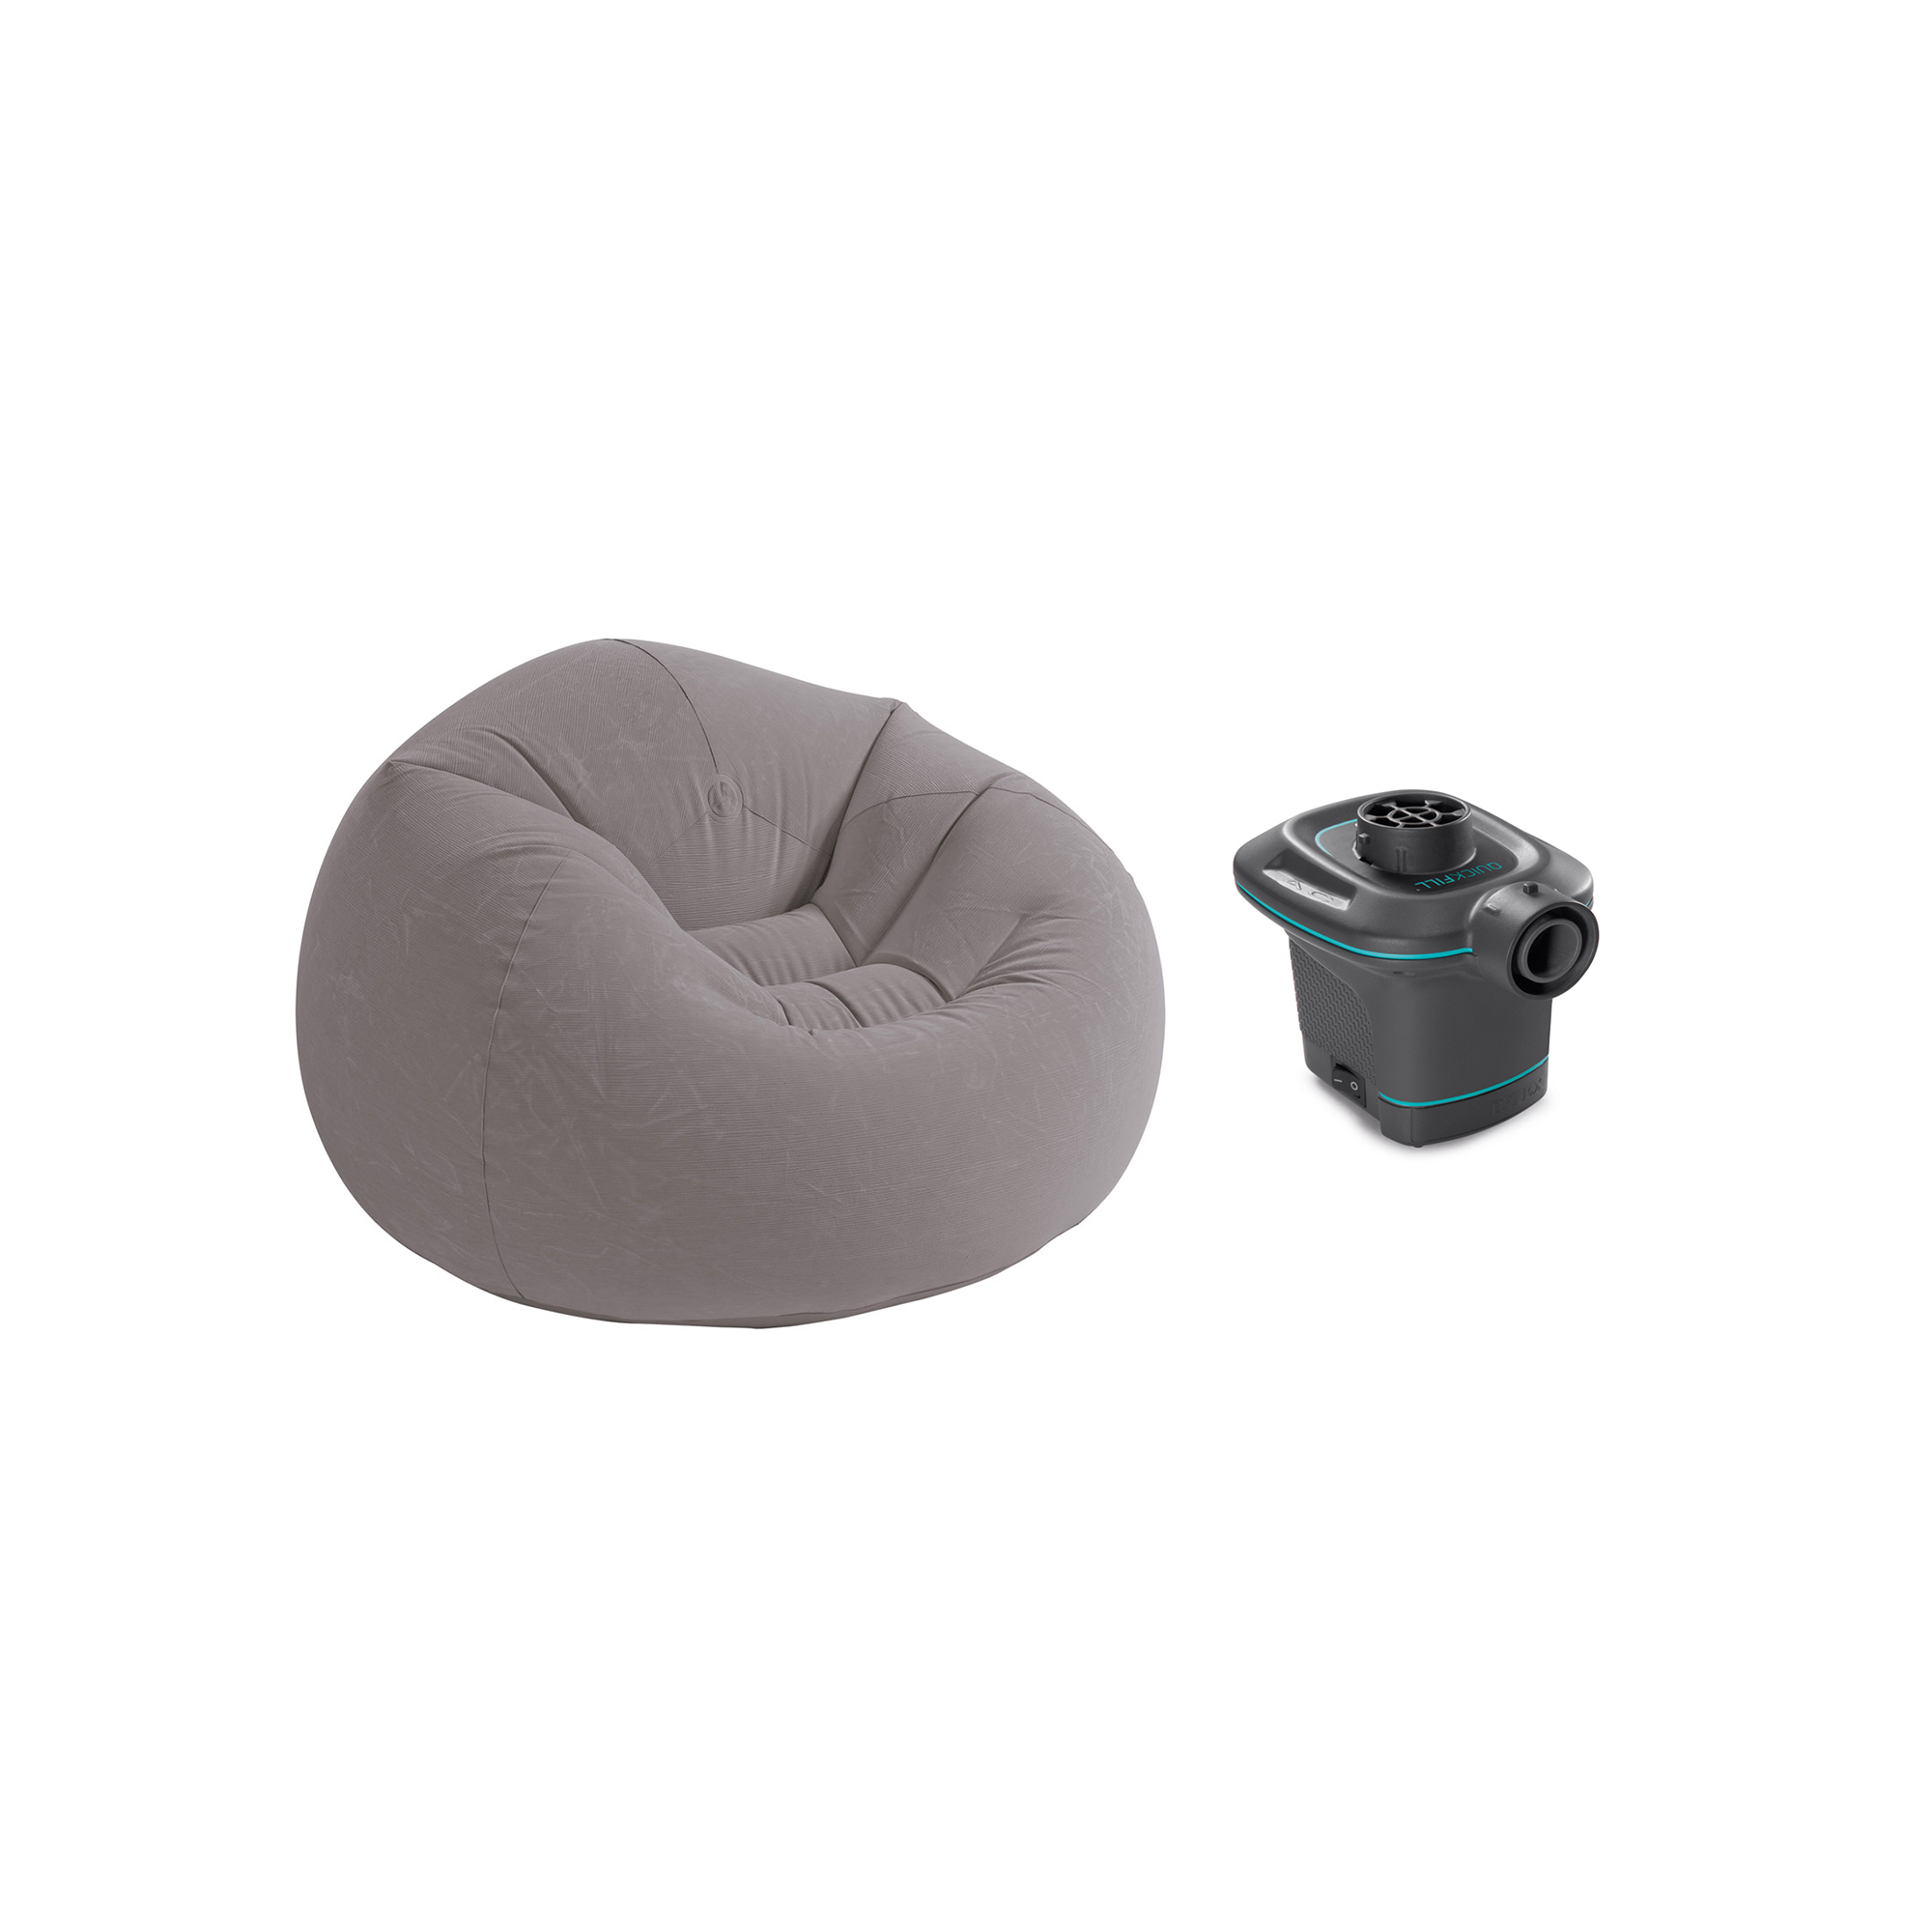 Fine Details About Intex 120V Ac Electric Air Pump Inflatable Corduroy Beanless Bag Lounge Chair Onthecornerstone Fun Painted Chair Ideas Images Onthecornerstoneorg